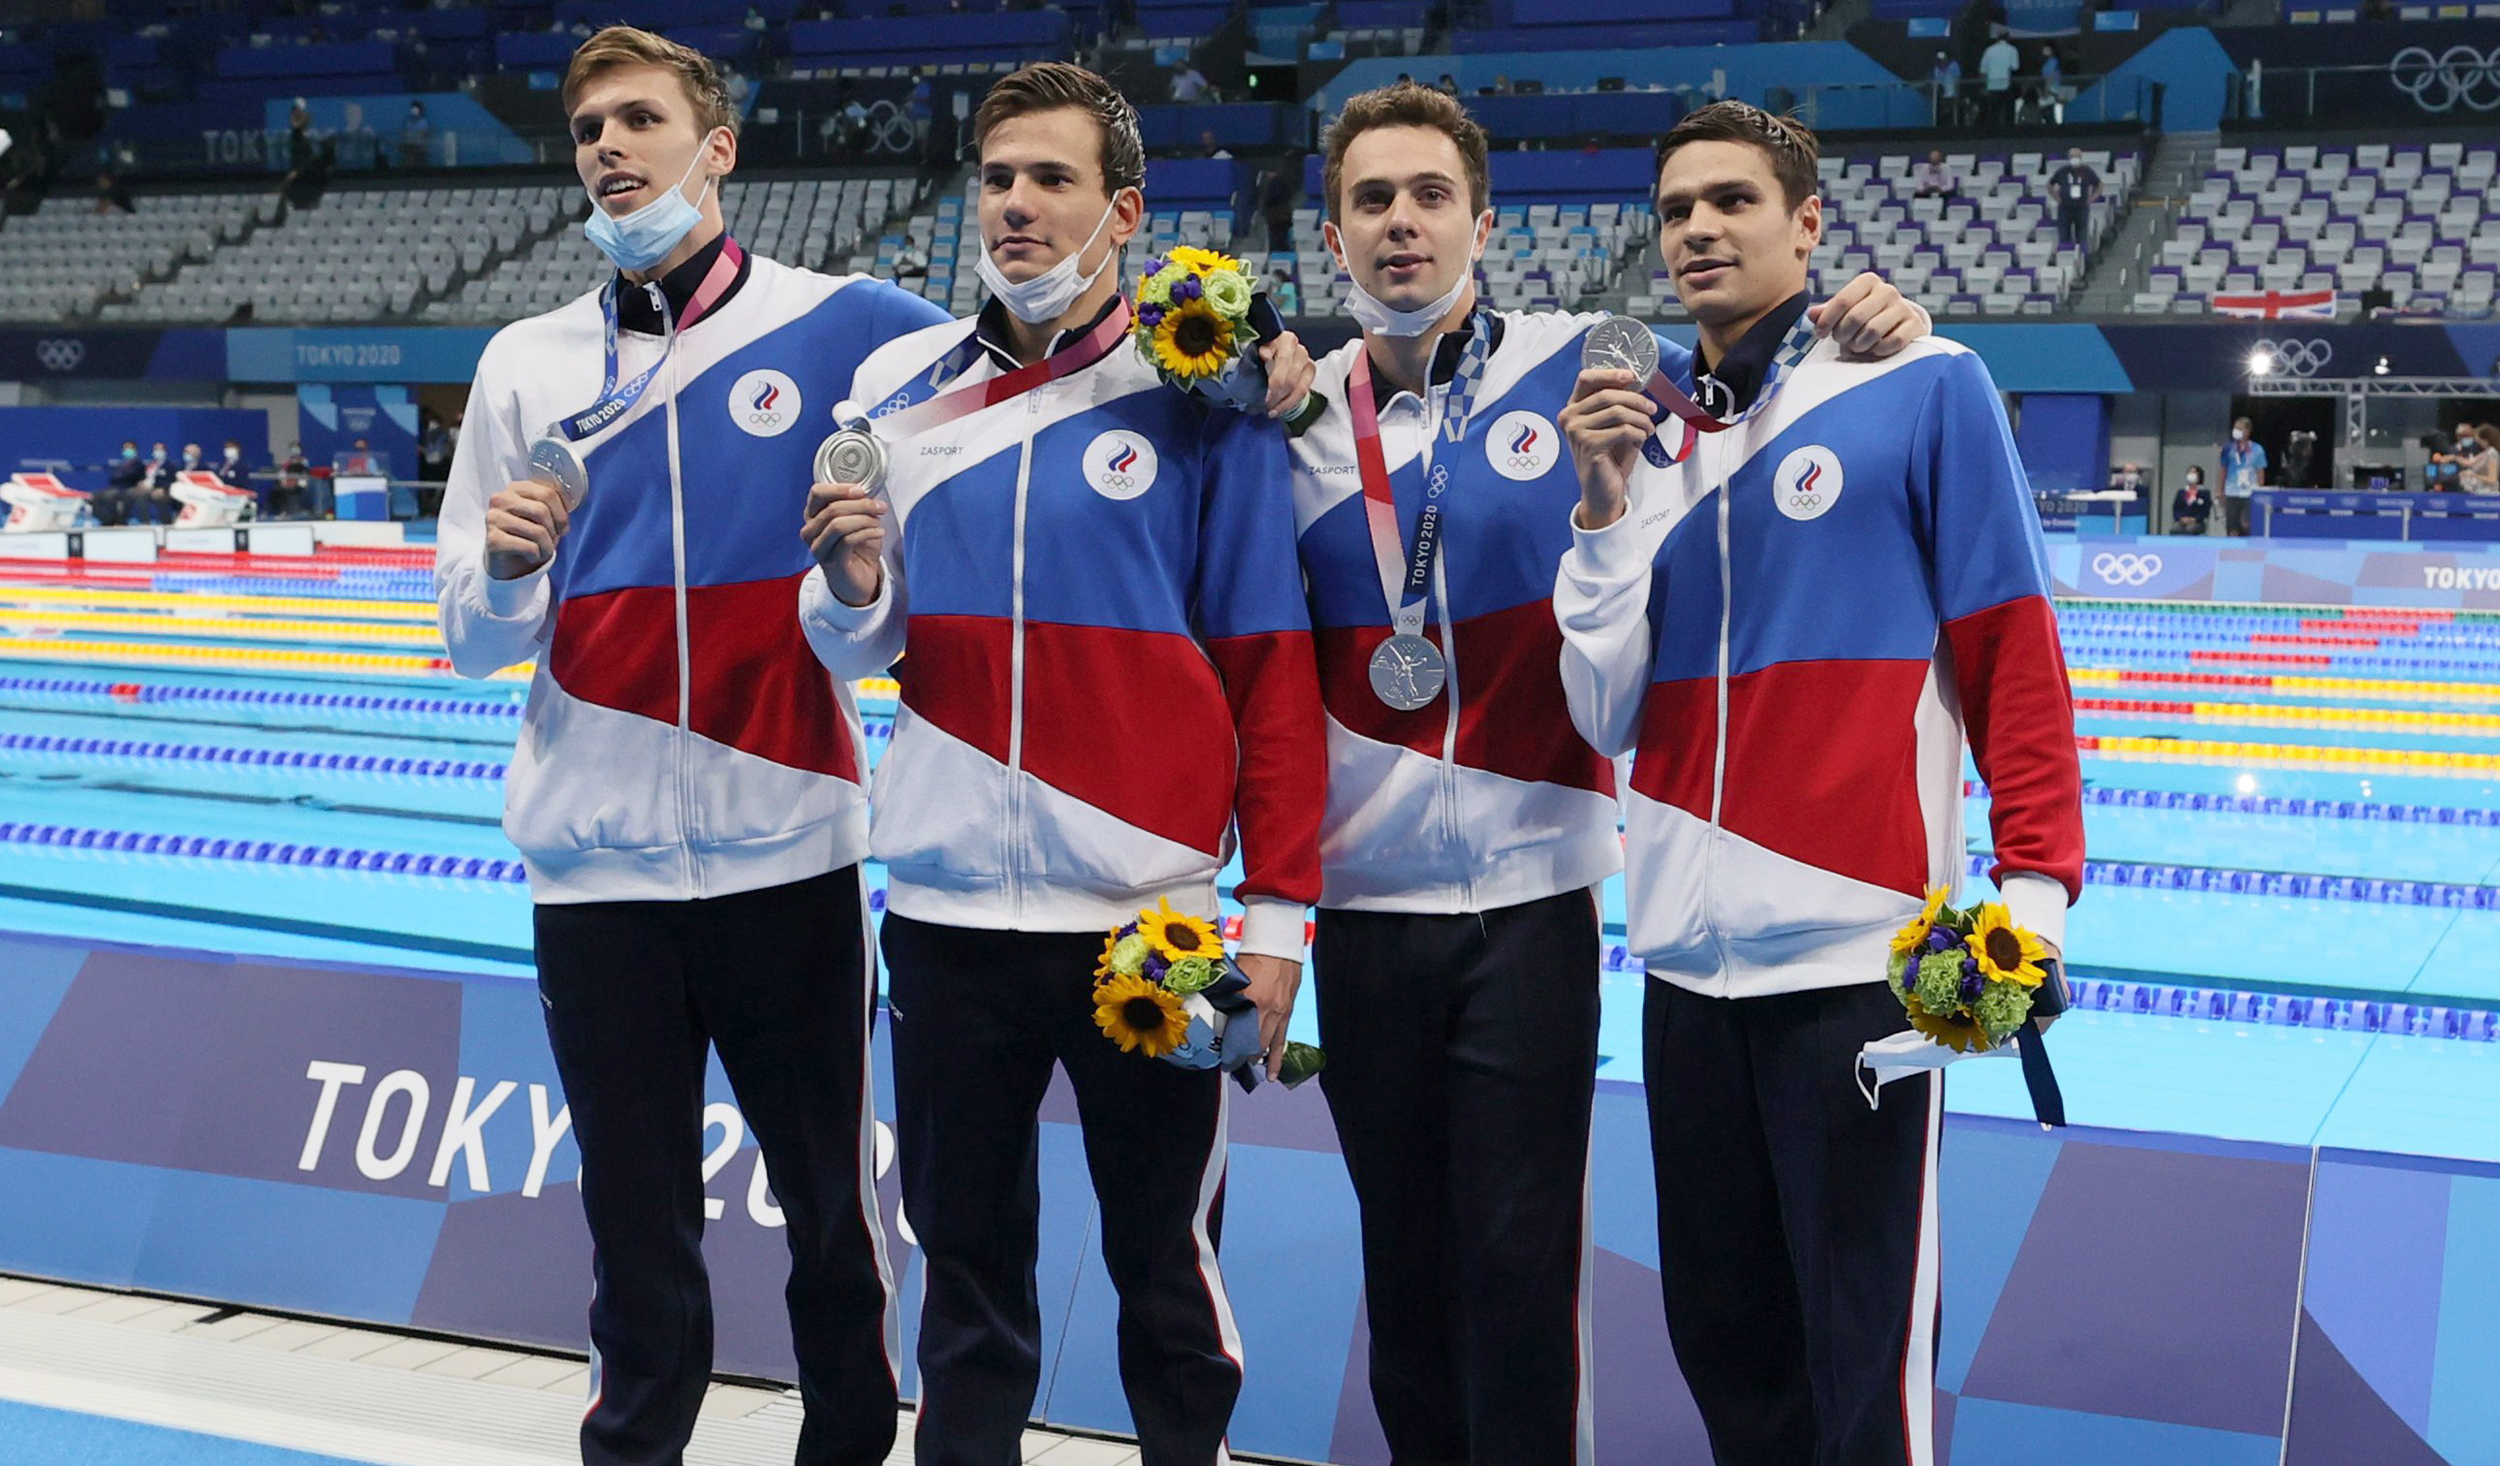 Russians are winning in Tokyo even though Team Russia is banned from the Games